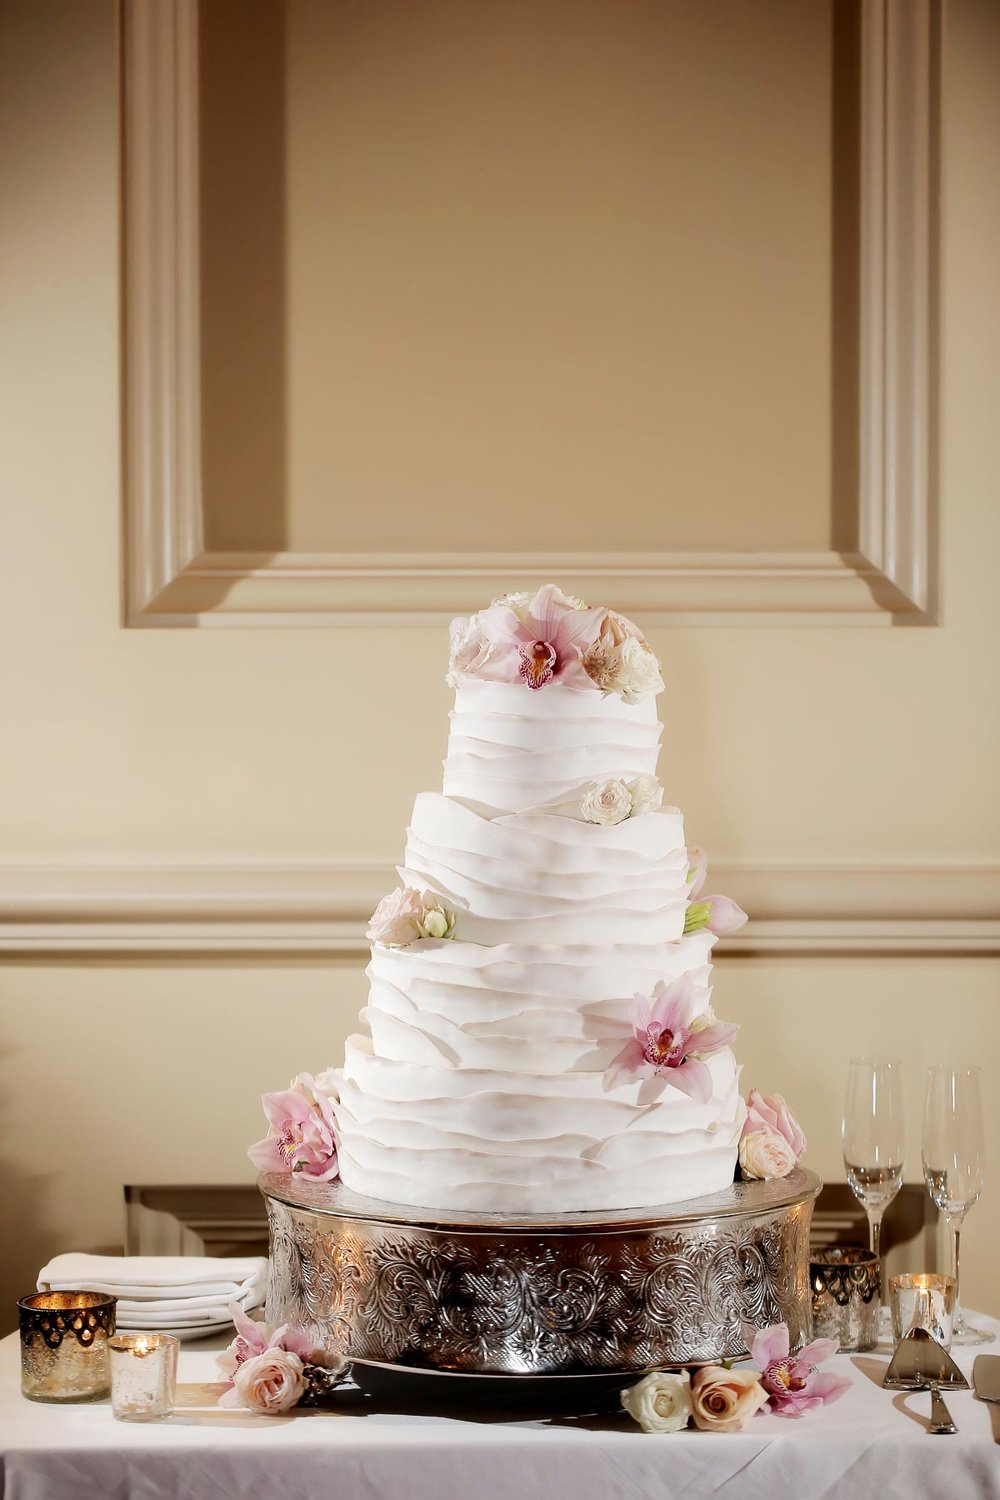 elegant-wedding-cake-pink-flowers-utah-weddings-deer-valley-weddings-pepper-nix-photography.jpg